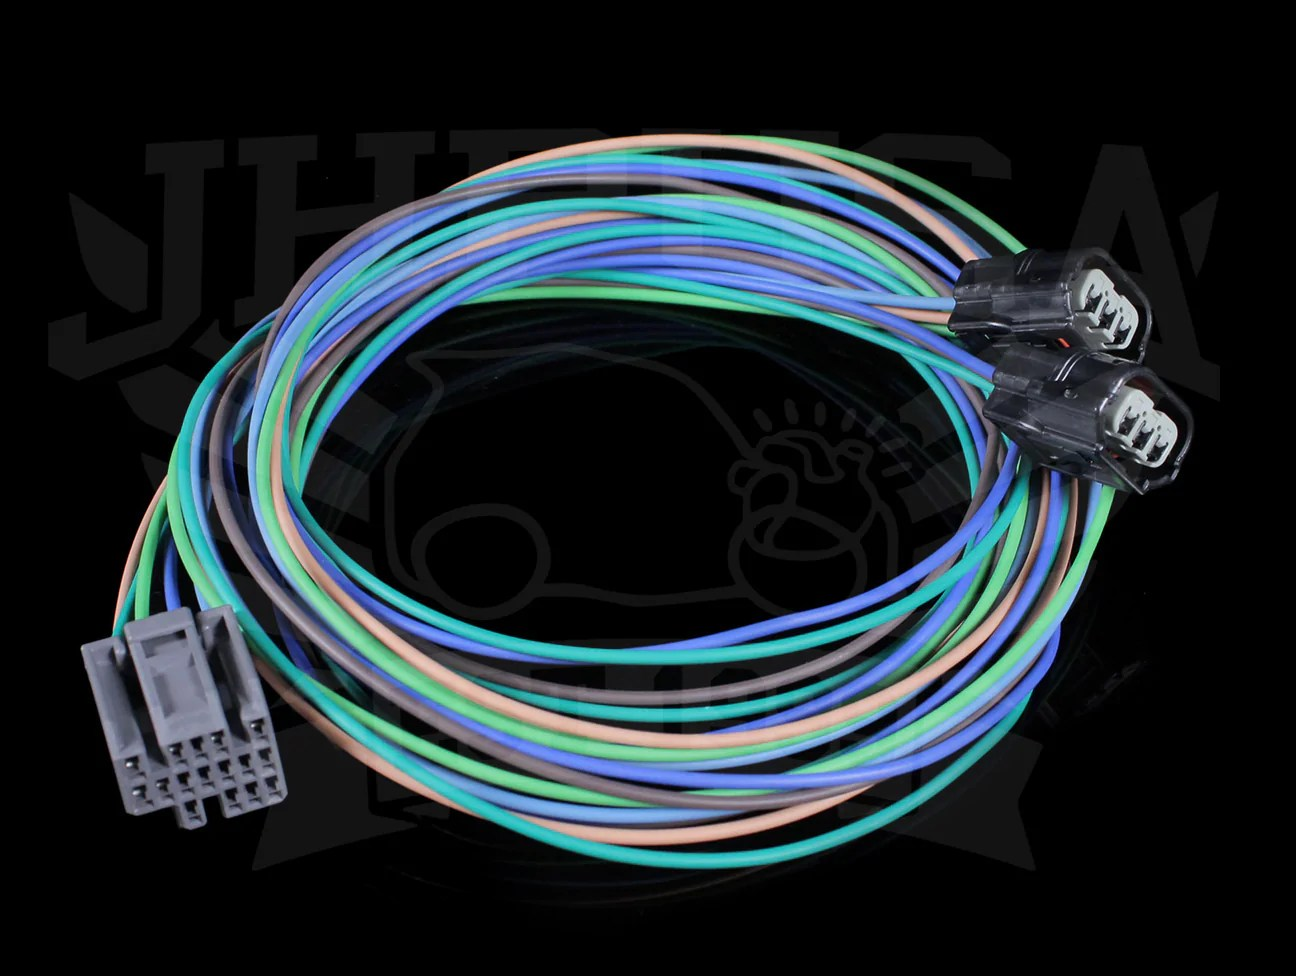 hight resolution of s2000 k pro wiring harness install wiring diagram used s2000 k pro wiring harness